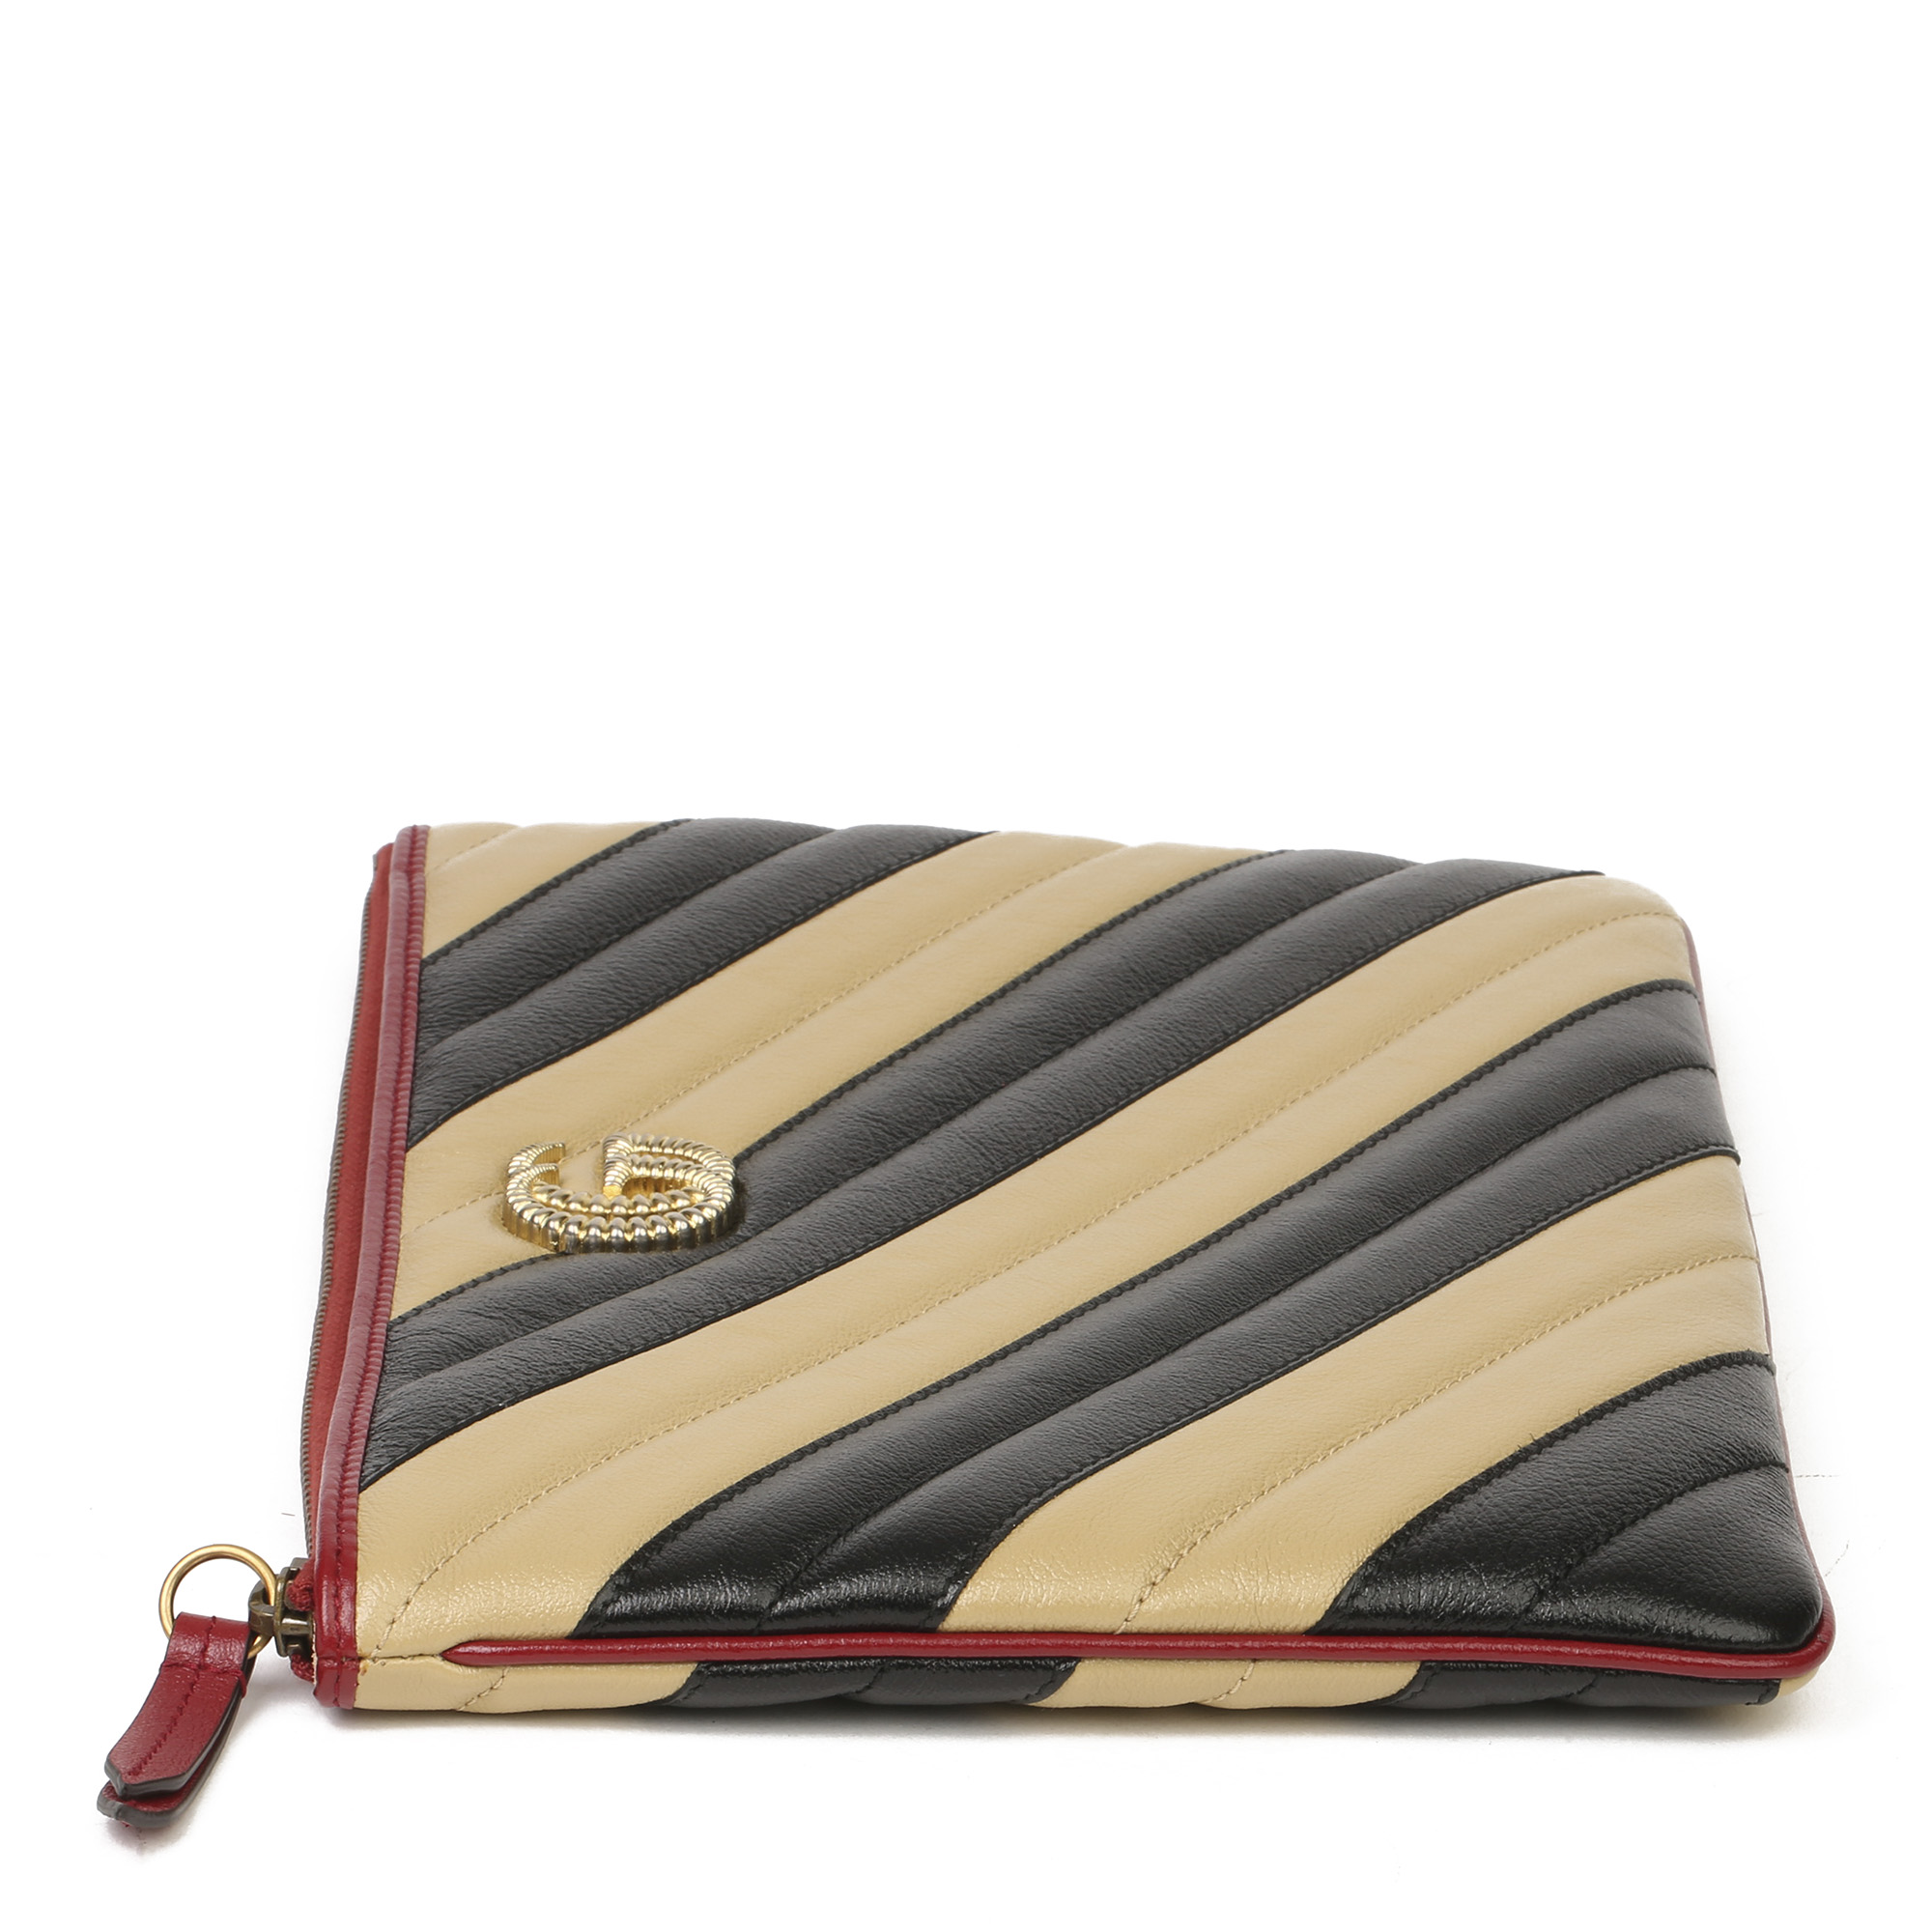 Gucci Black, Cream & Red Diagonal Quilted Aged Calfskin Leather Marmont Pouch - Image 11 of 11